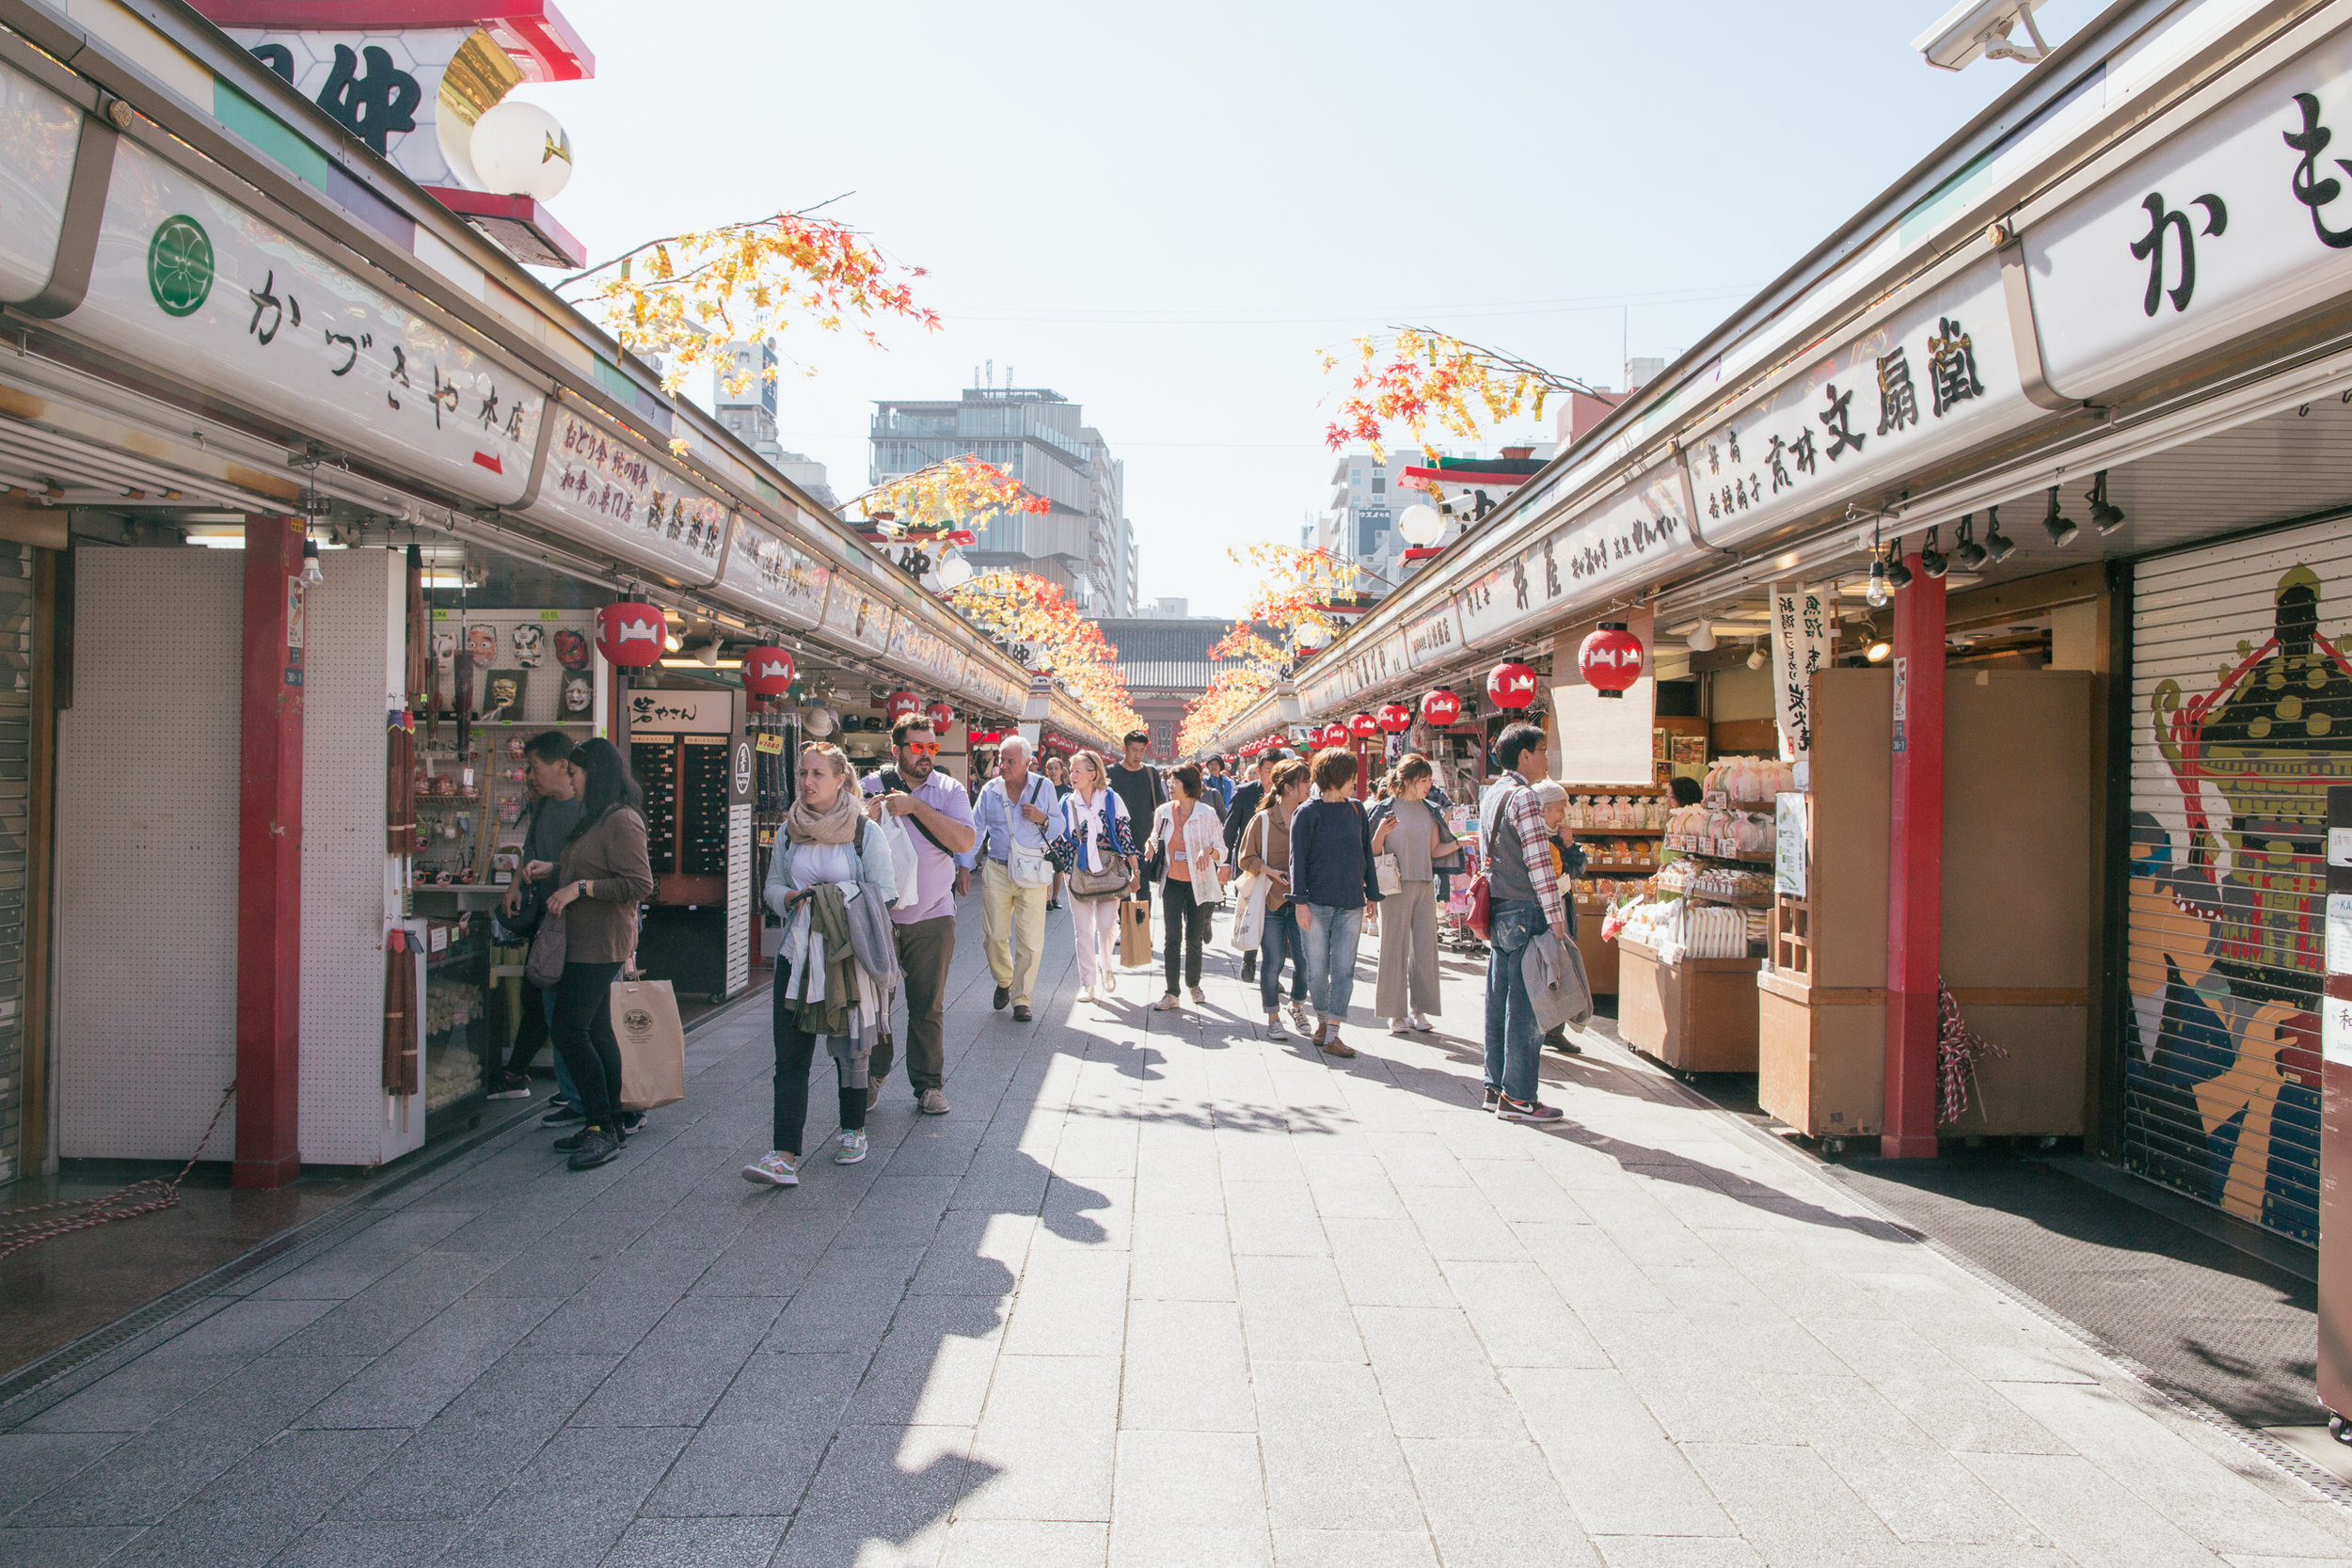 The street leading into the Senso-ji in Asakusa. Pictured here is Nakamise-dori which is lined with shops selling snacks and souvenirs. In the distance you can see Kengo Kuma's Asakusa Culture & Tourism Center.